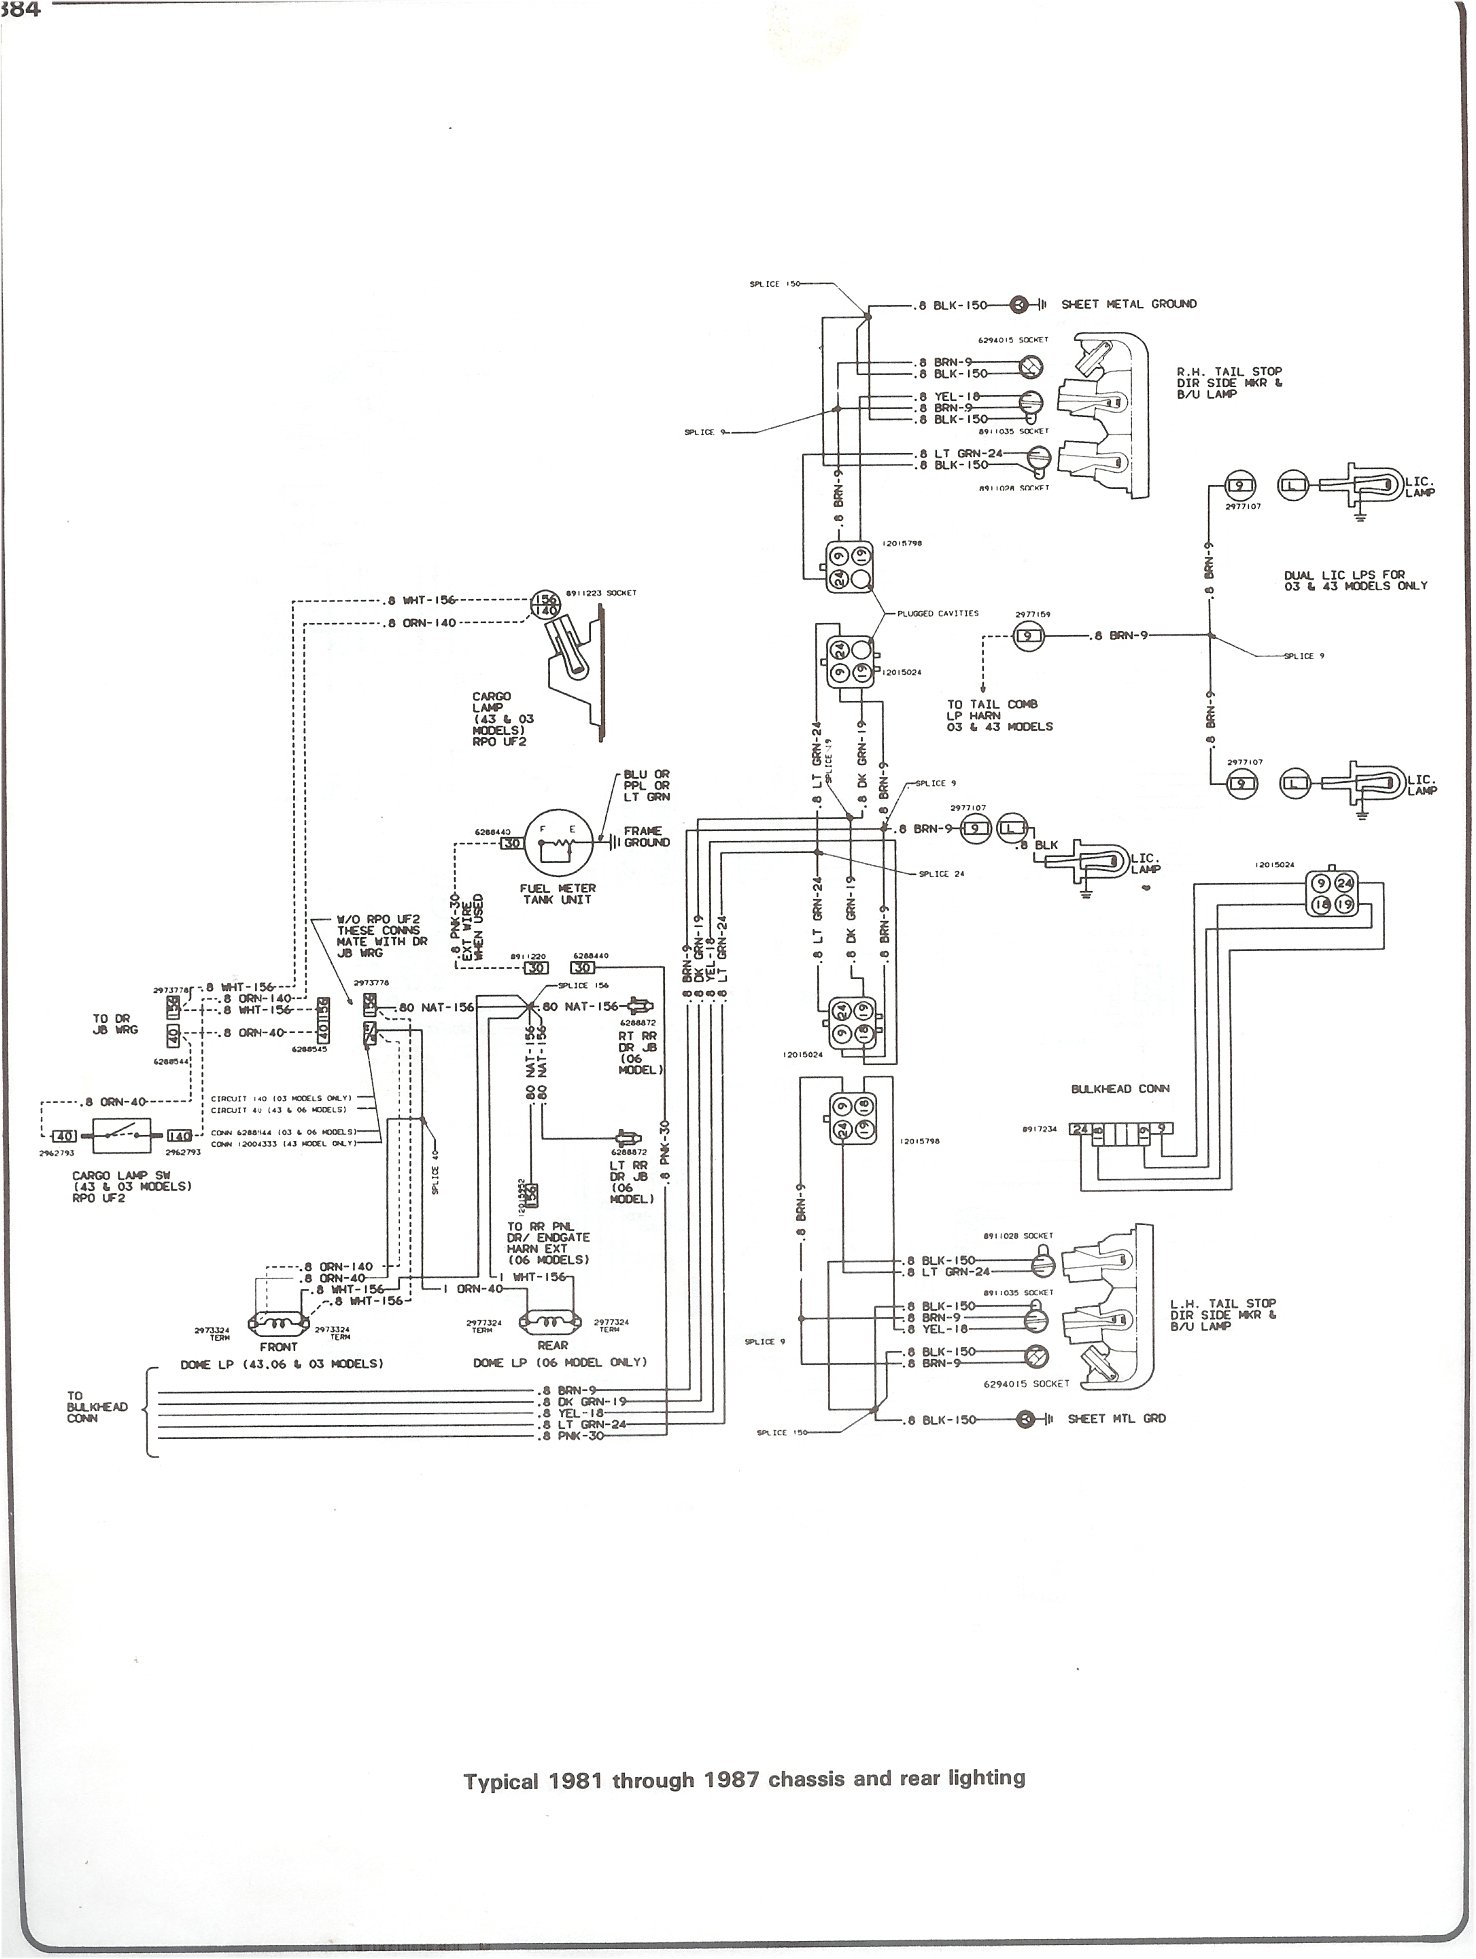 81 87_chass_rr_light complete 73 87 wiring diagrams 73-87 Chevy Wiring Diagrams Site at creativeand.co